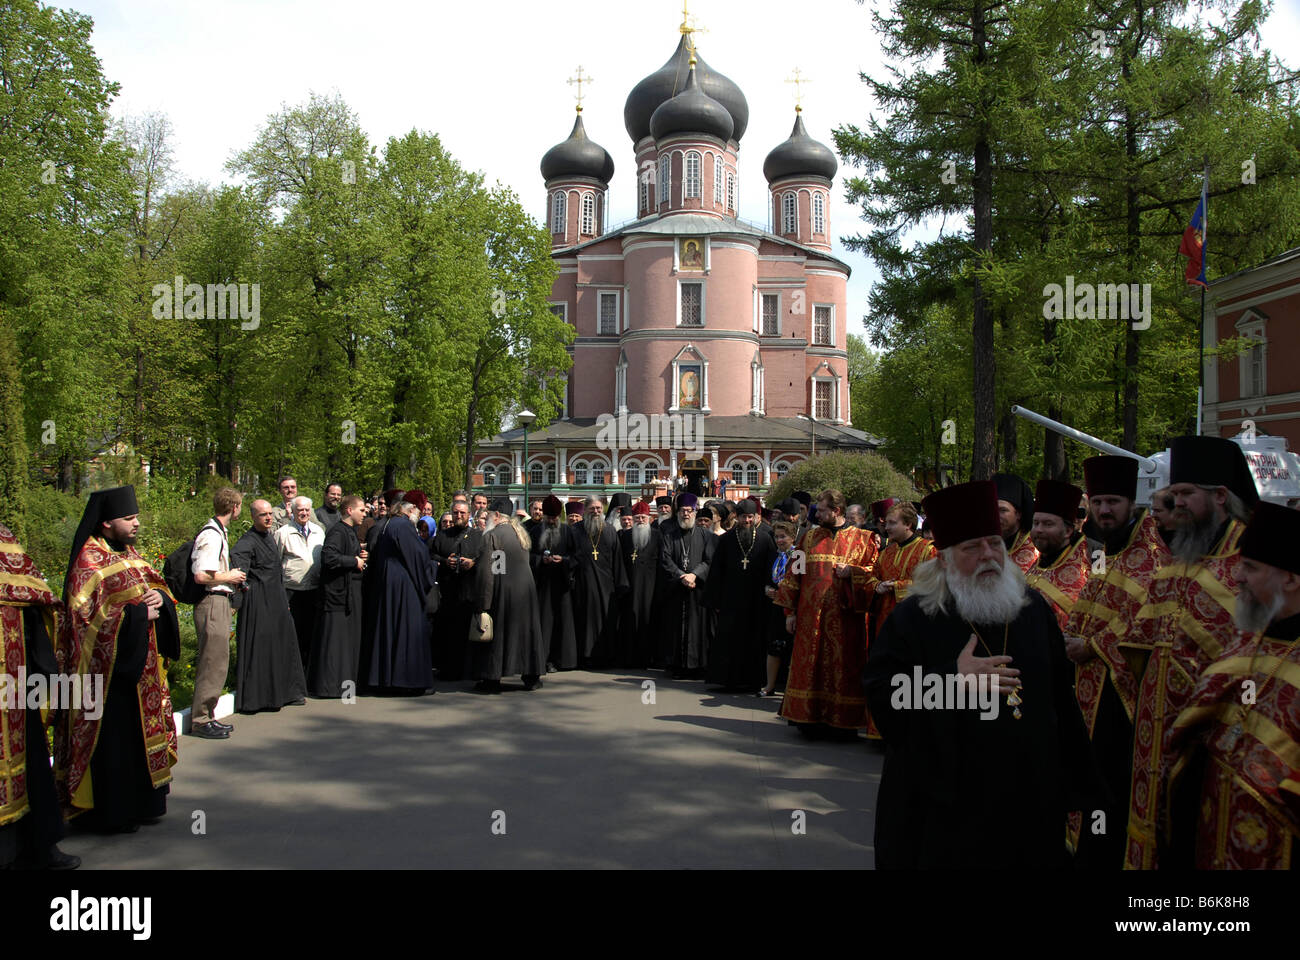 Priests waiting for arrival of Metropolitan Laurus in front of New Cathedral, Donskoy Monastery, Moscow, Russia - Stock Image